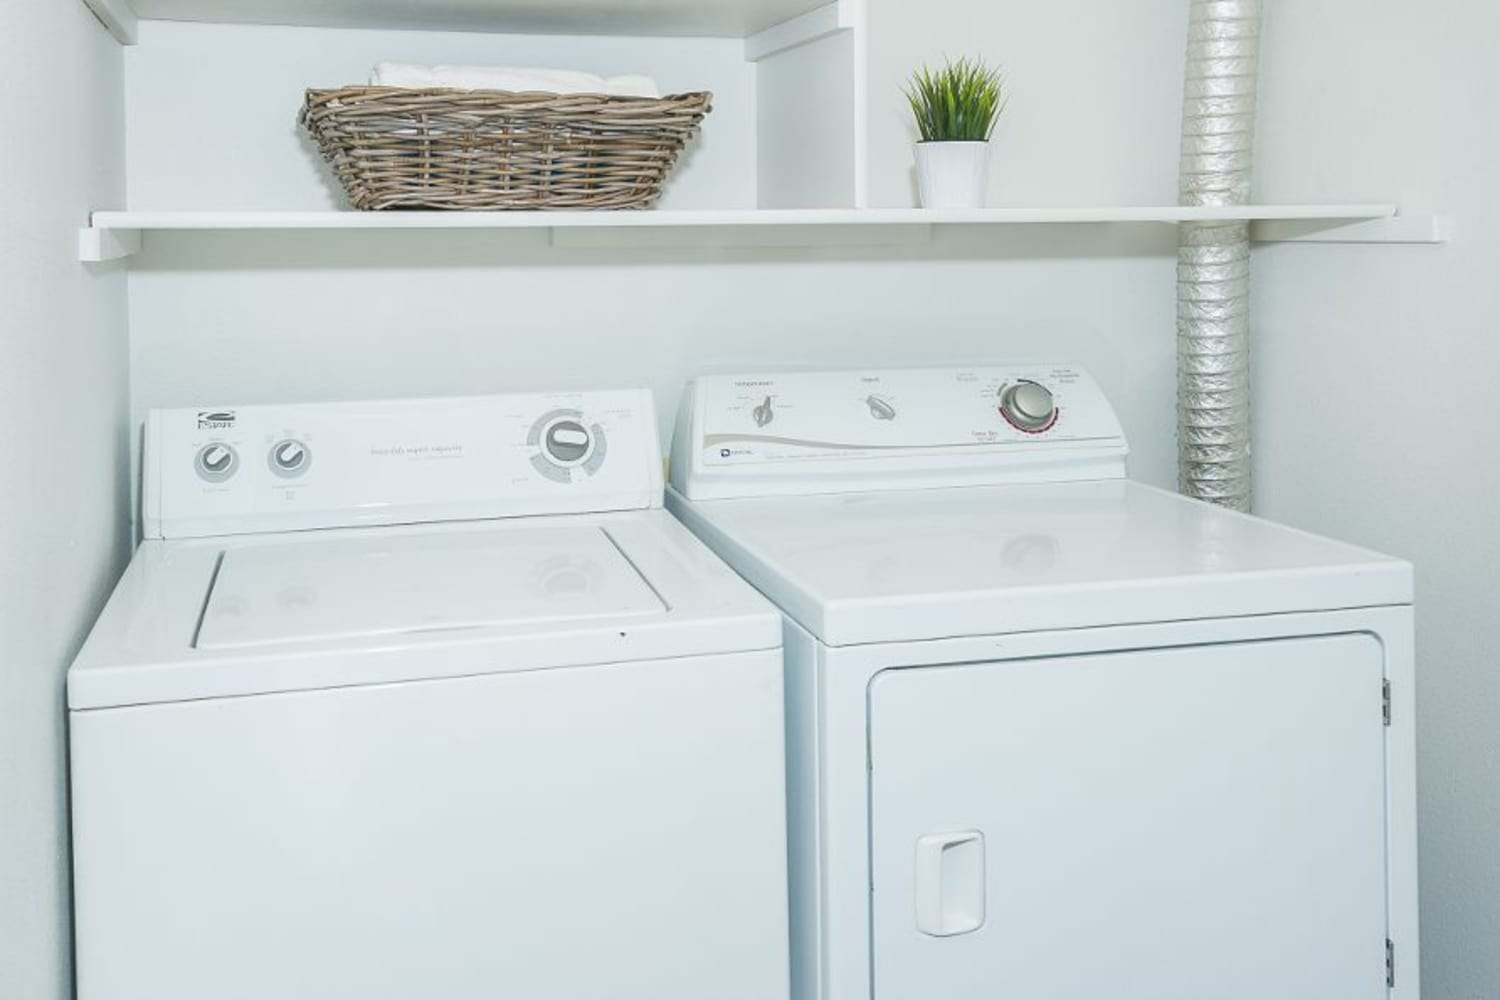 Washer and dryer at Metropolitan Park Apartments in Seattle, Washington